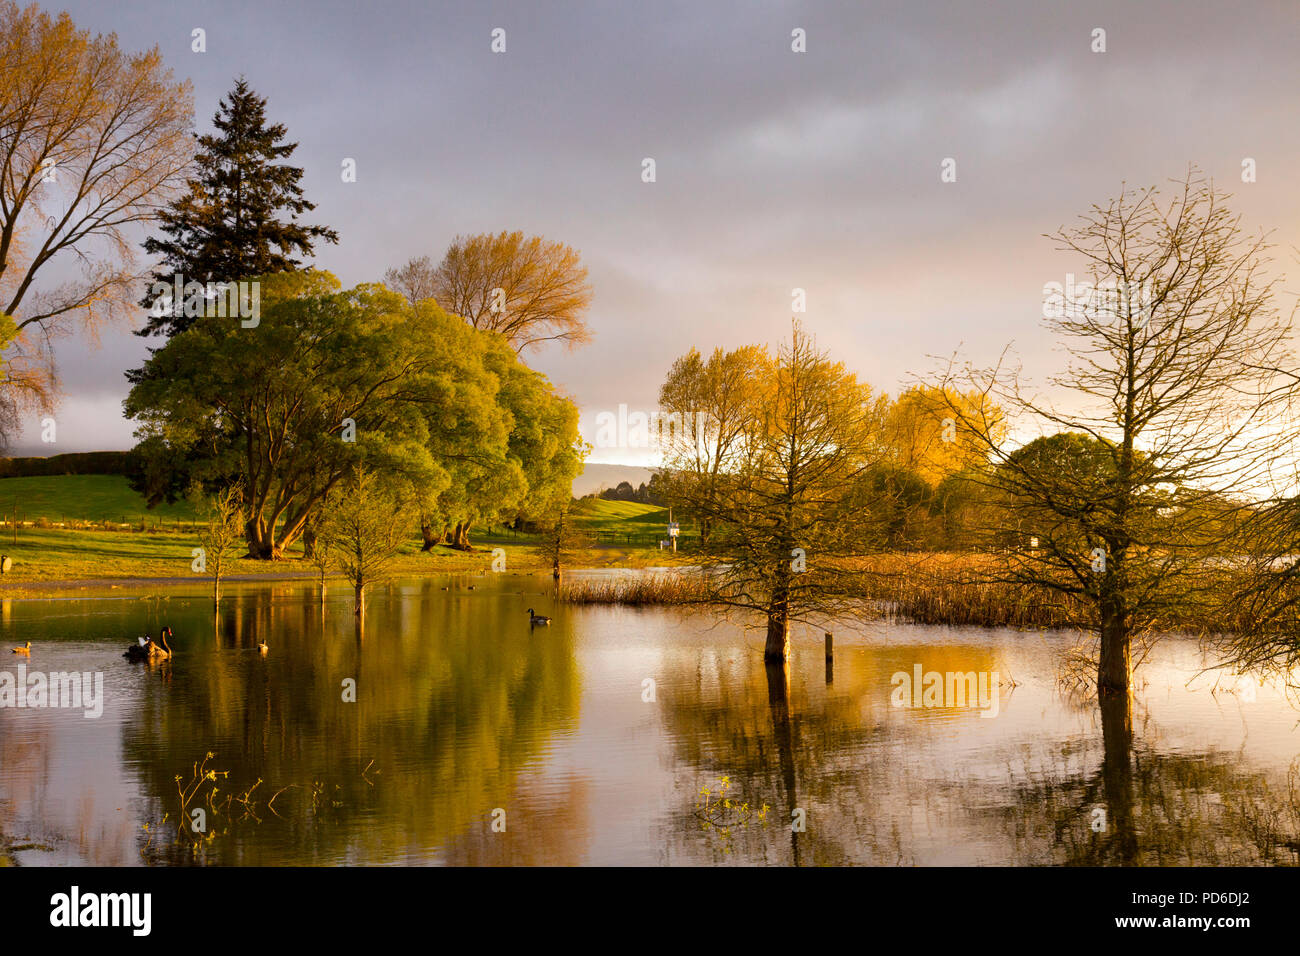 Guy Roe Reserve, Lake Rerewhakaaitu, Rotorua, New Zealand, in beautiful early morning light. - Stock Image